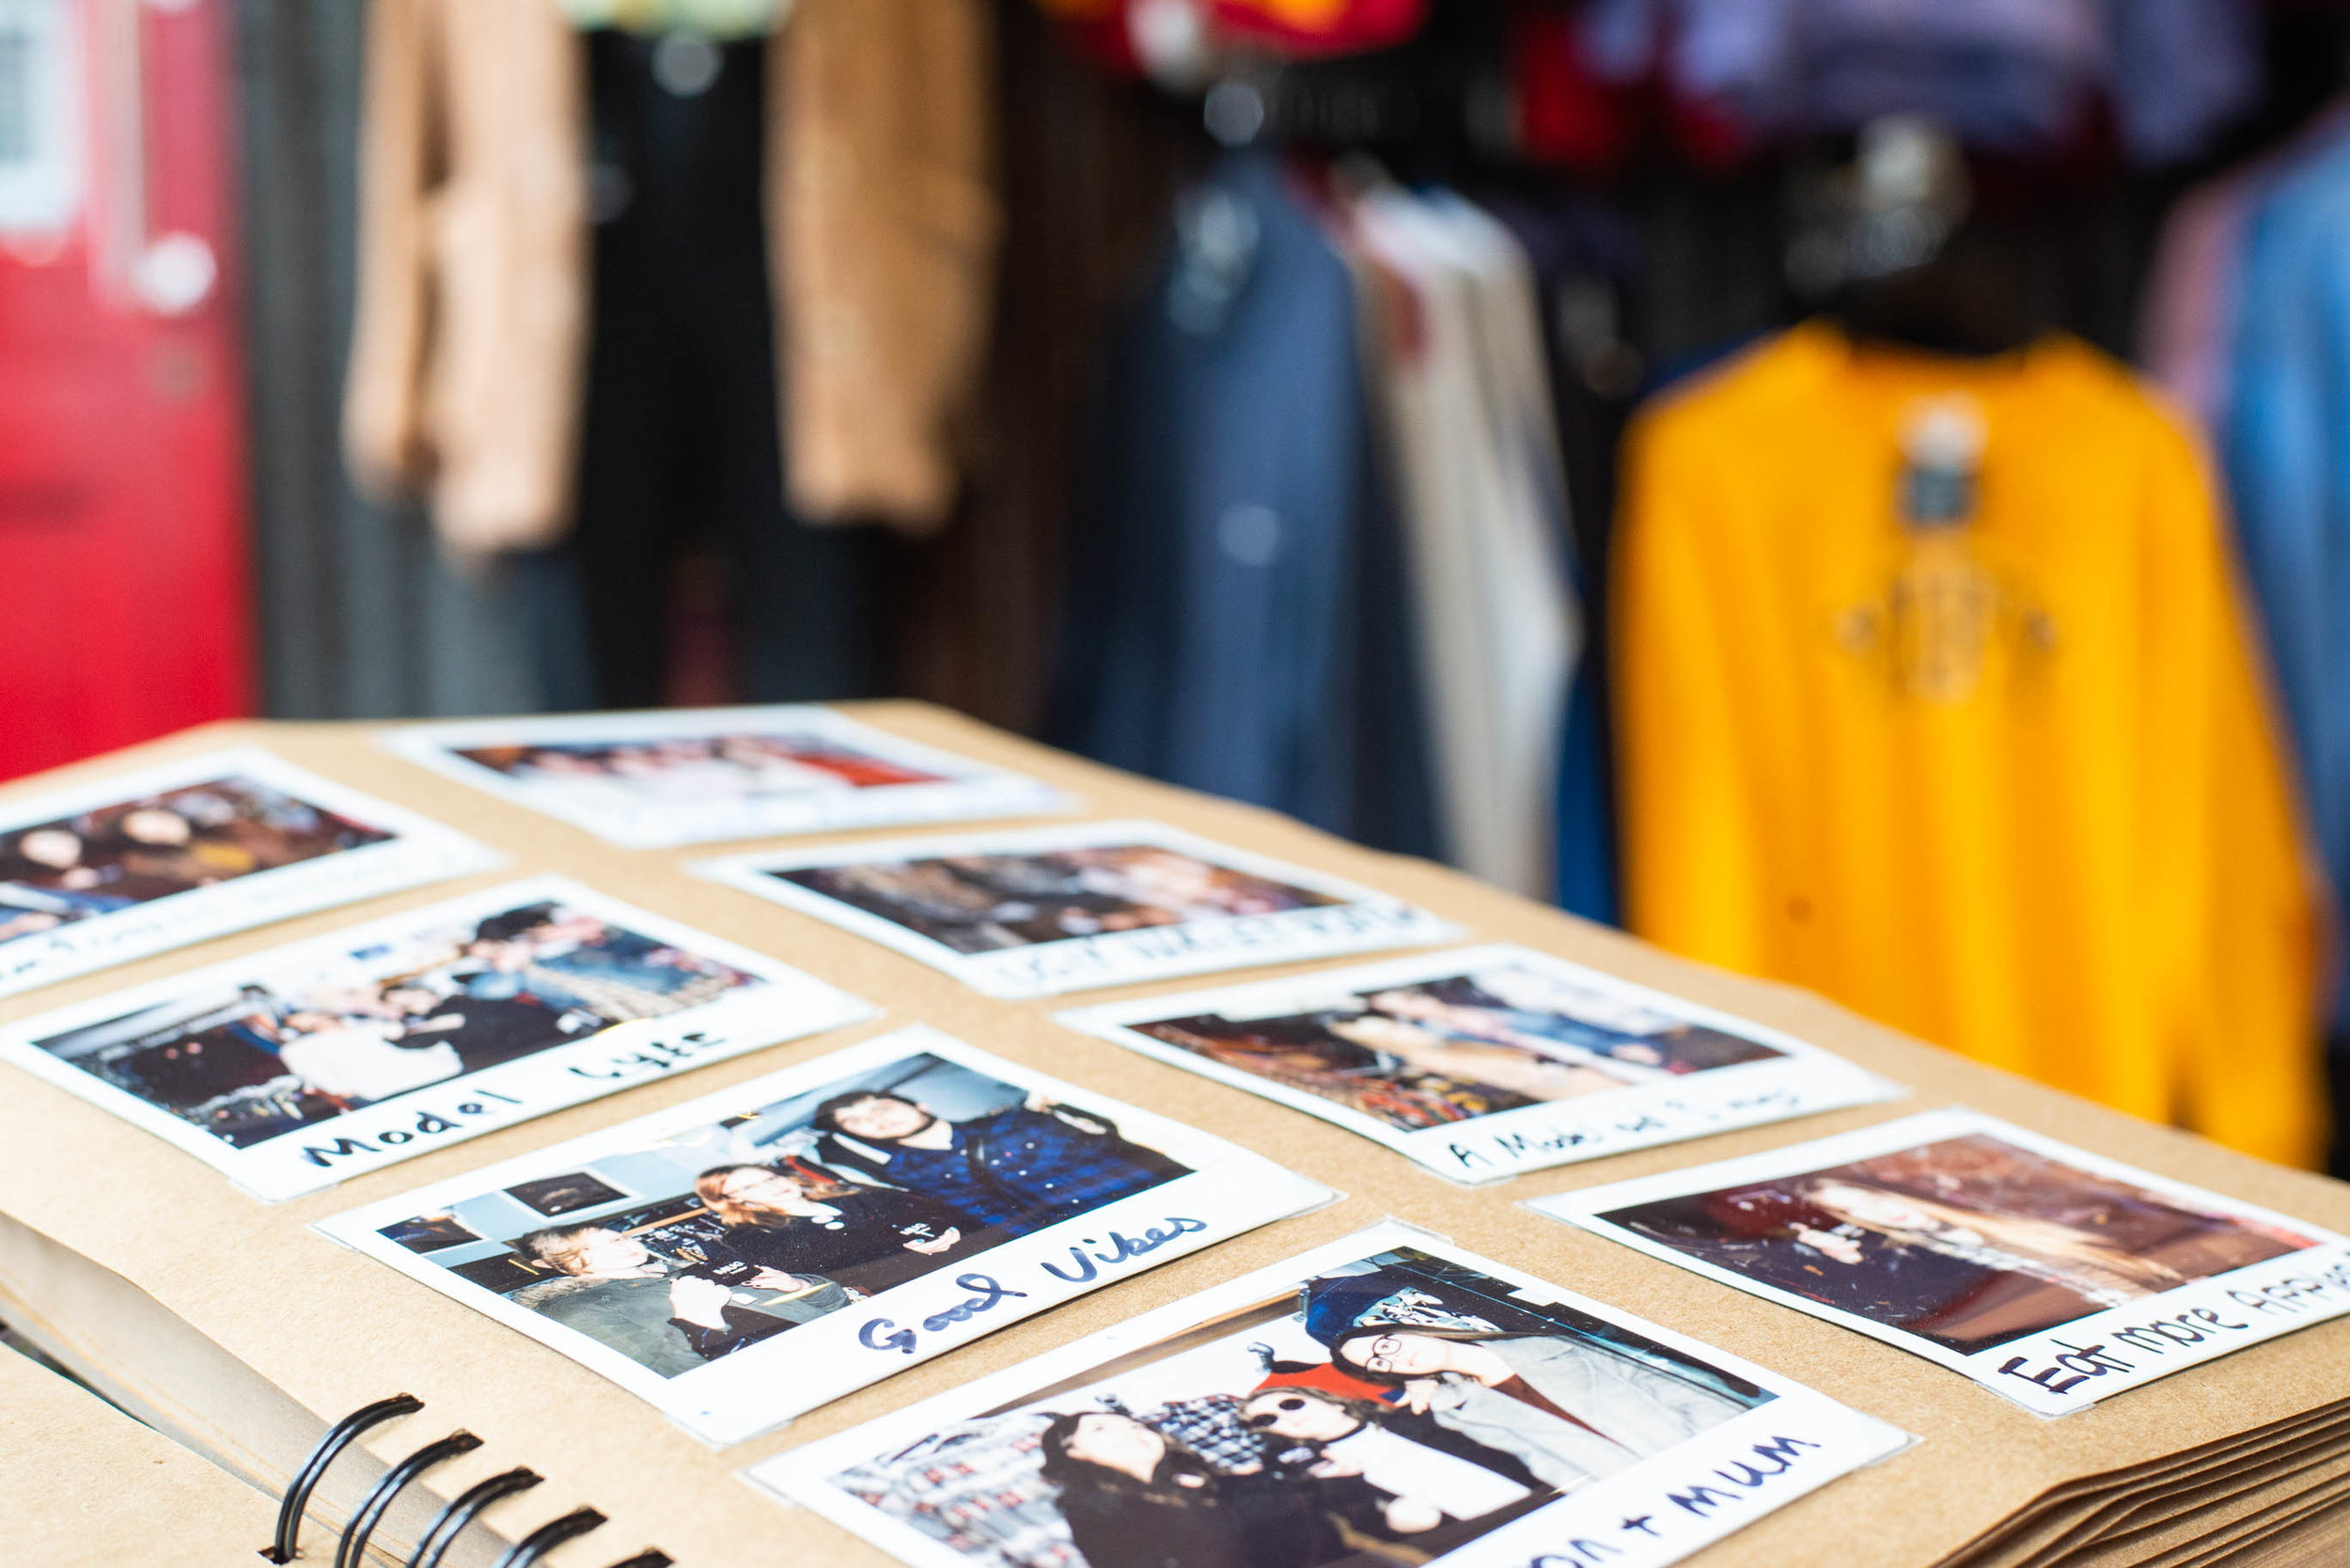 The BDV polaroid photo album, featuring some of our most loved and regular customers.